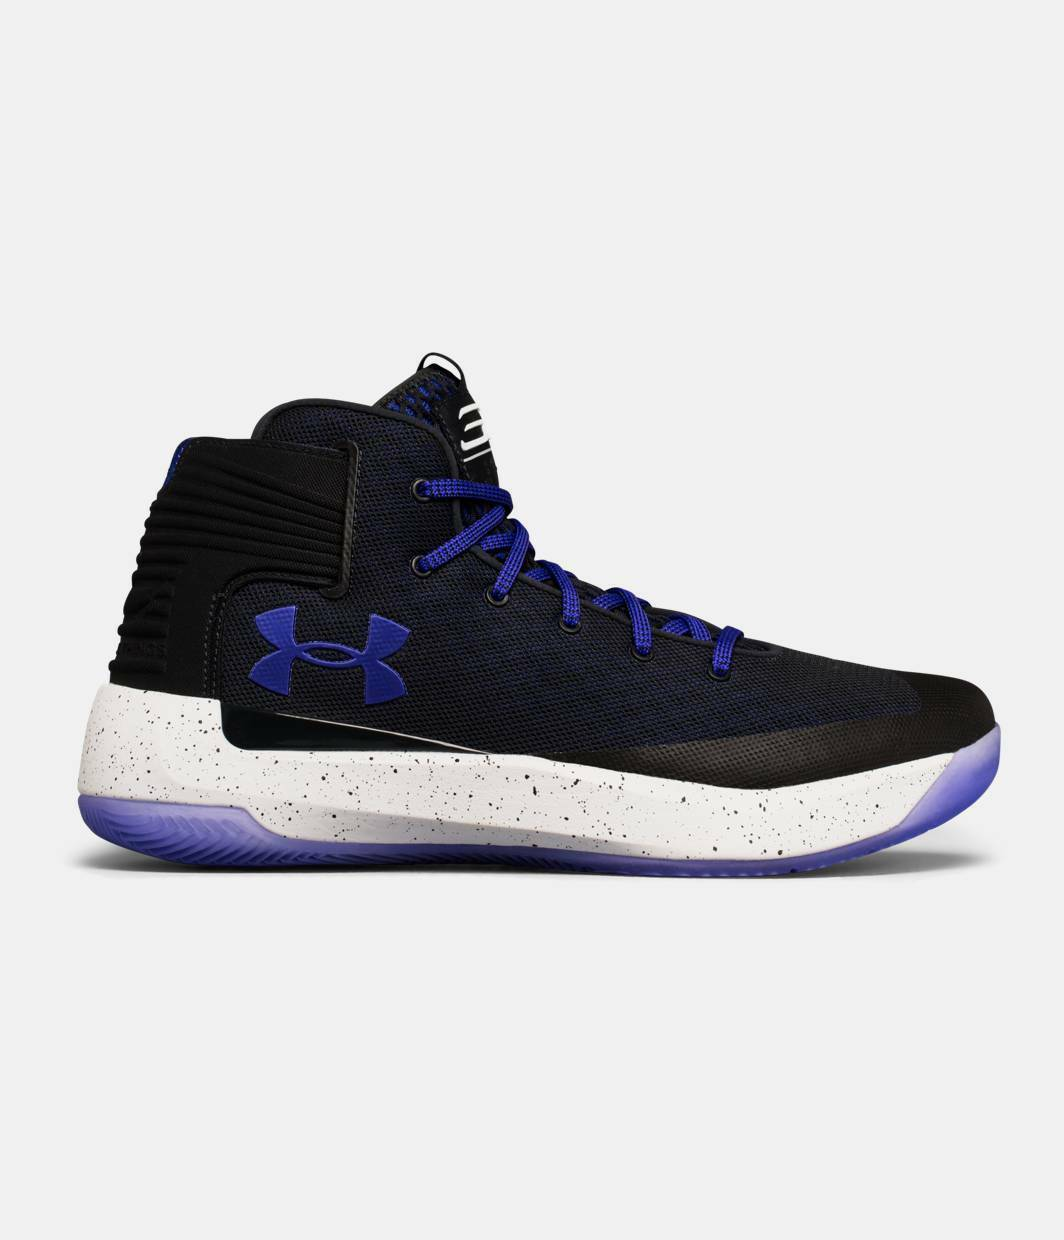 Under Armour Men/'s Curry 3 Zero Athletic Basketball Shoes Anthracite//Purple